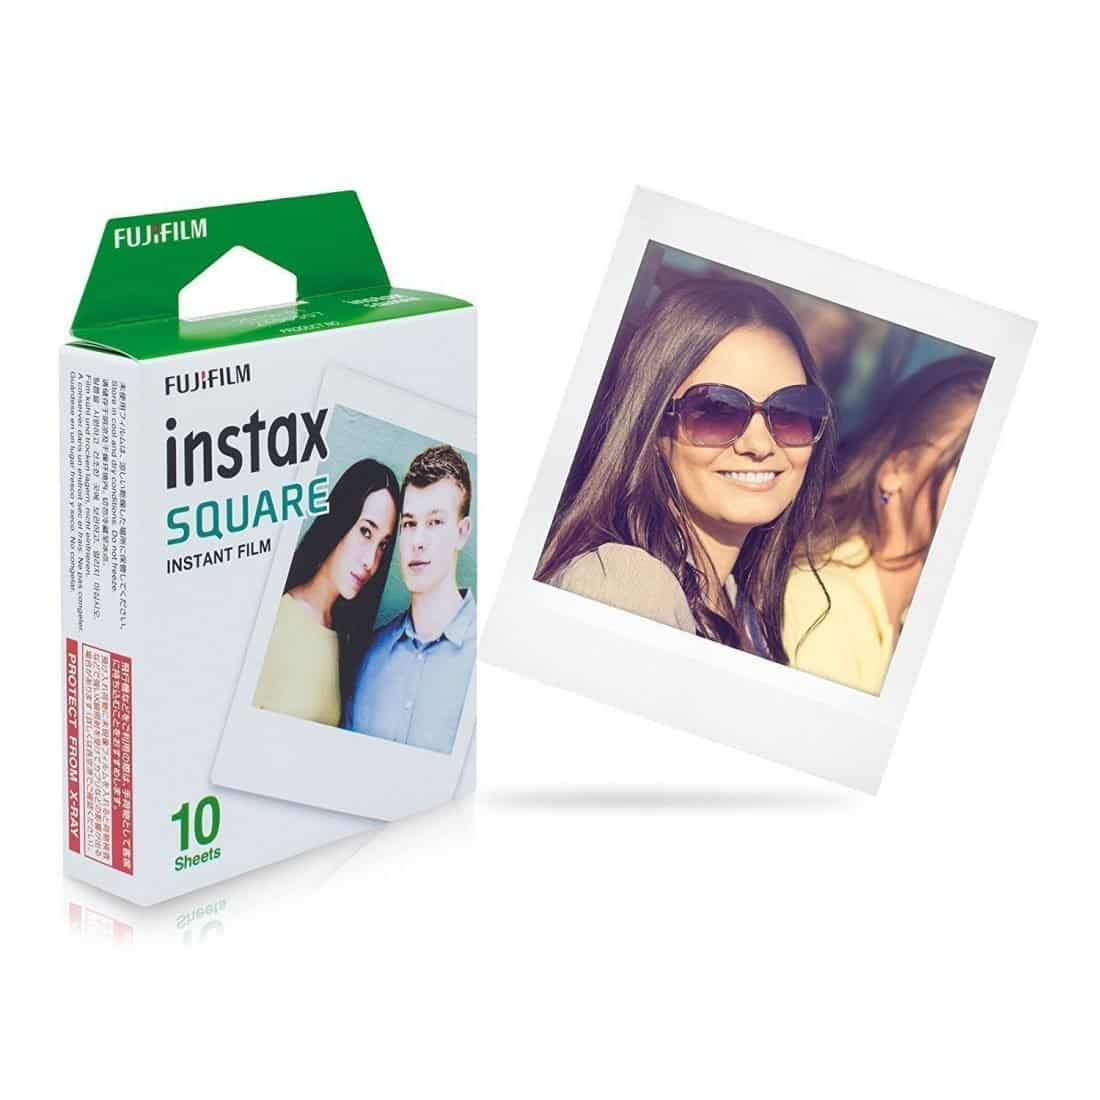 instax square instant film 10 sheets beirut lebanon